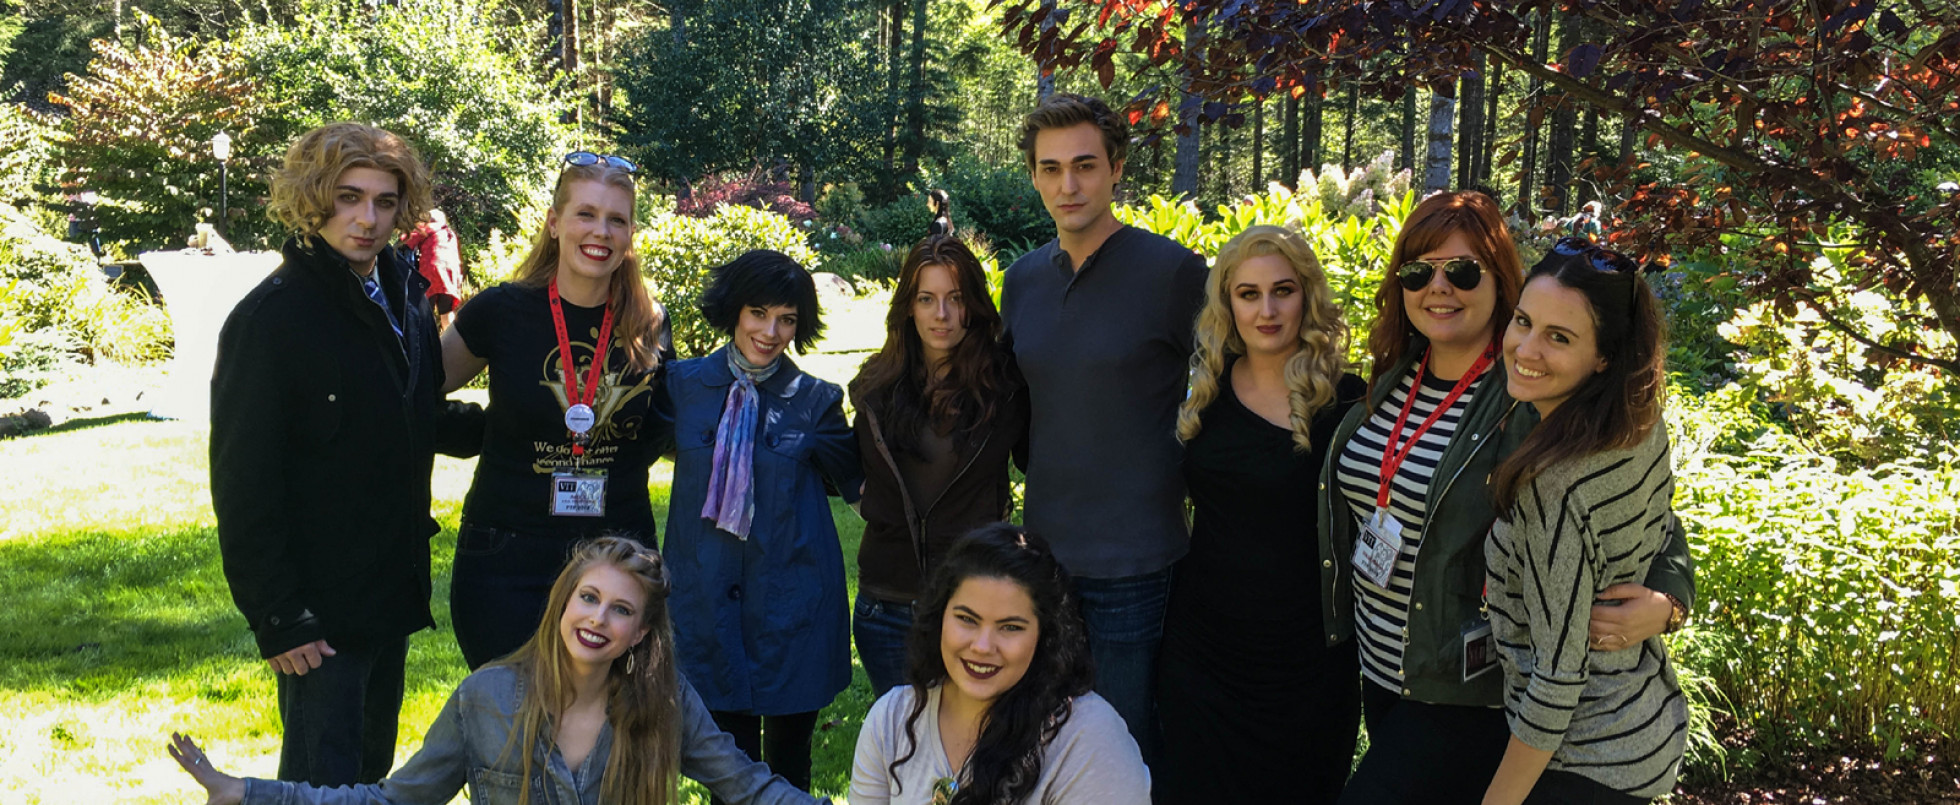 Forever Twilight in Forks Festival